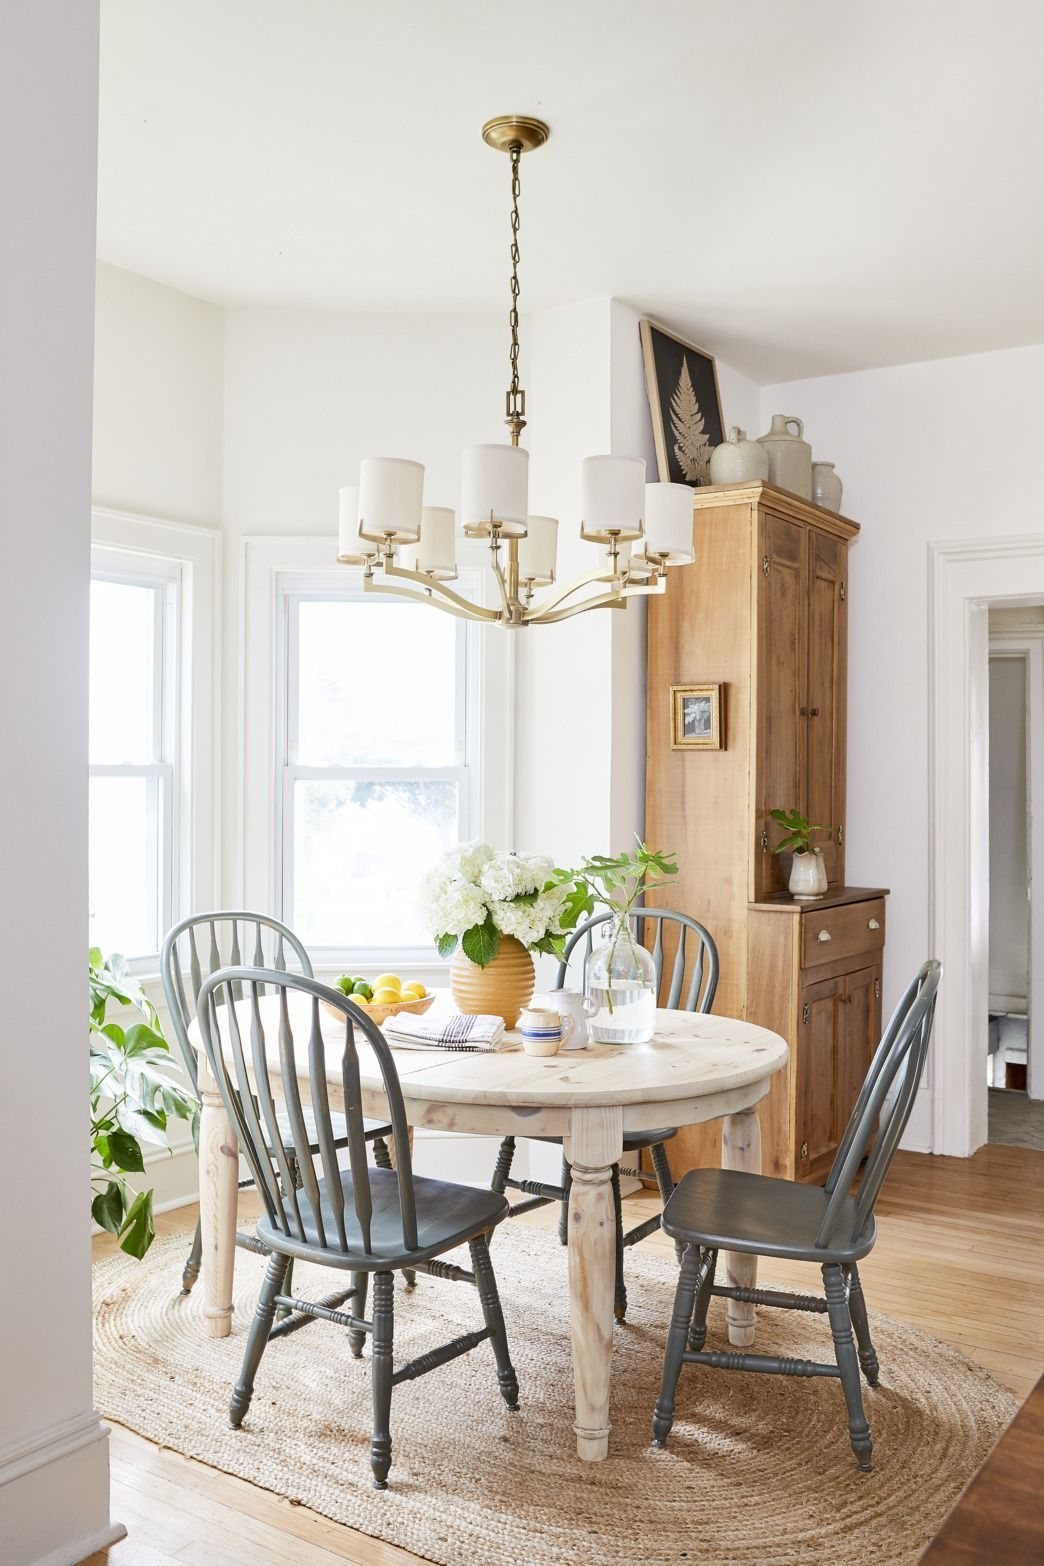 35 Best Breakfast Nook Ideas That Will Start Your Day Off ... on Nook's Cranny Design Ideas  id=62286